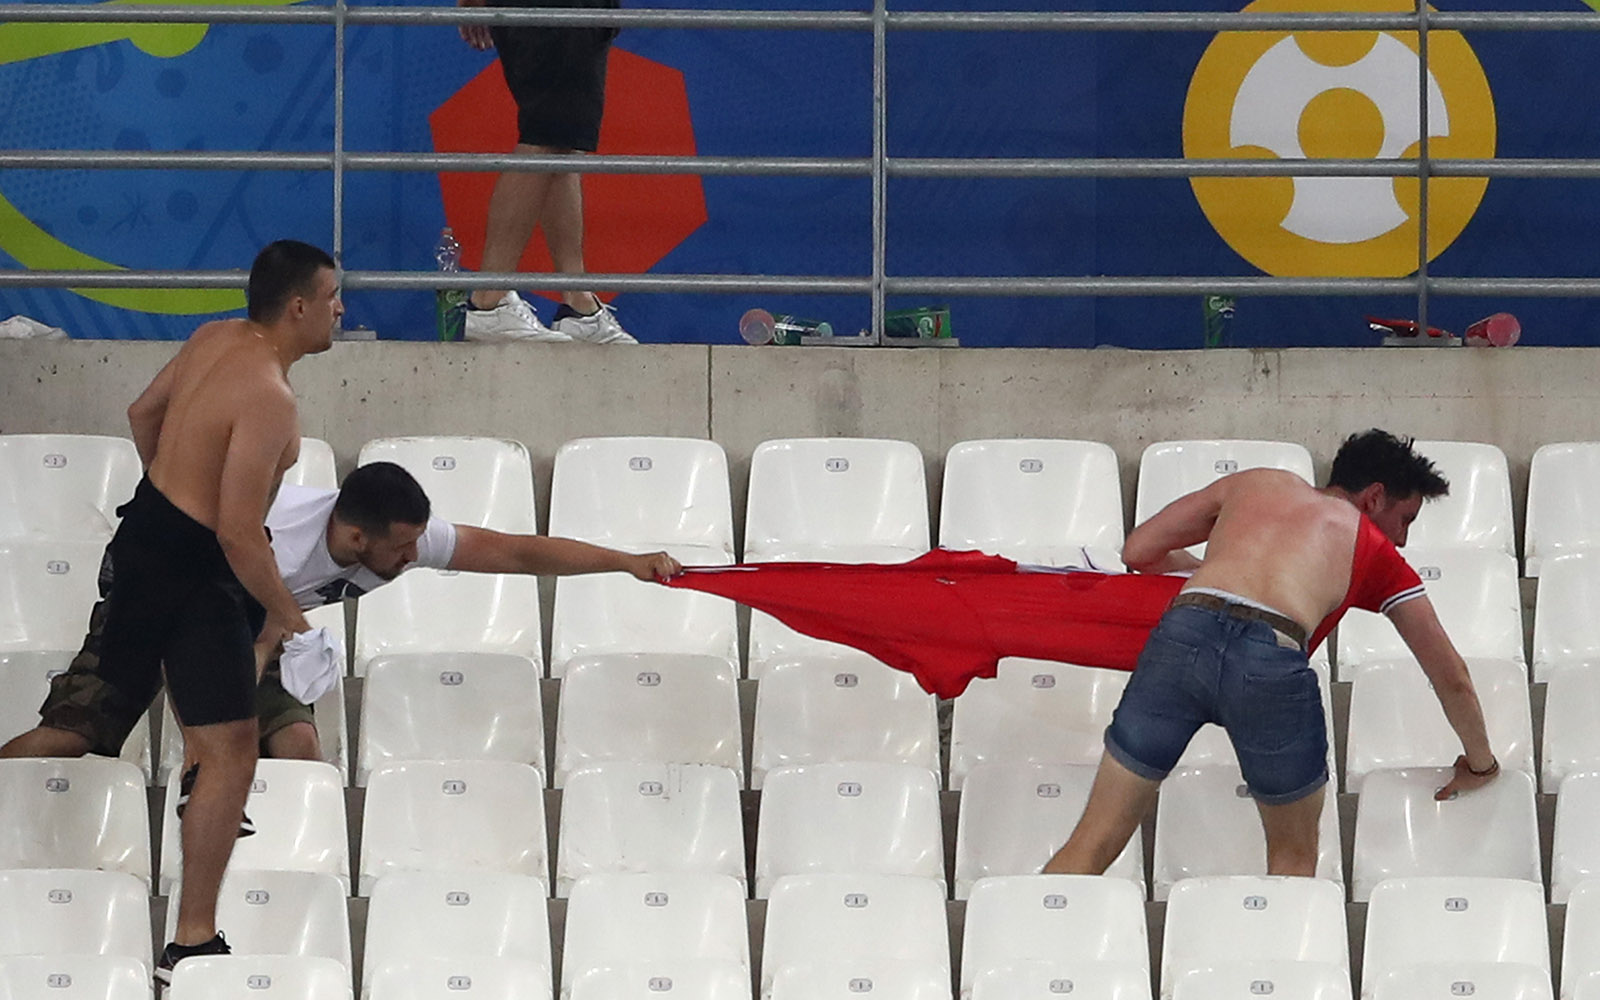 Fans clashing at an England vs. Russia match when France hosted the UEFA Euro 2016 championship